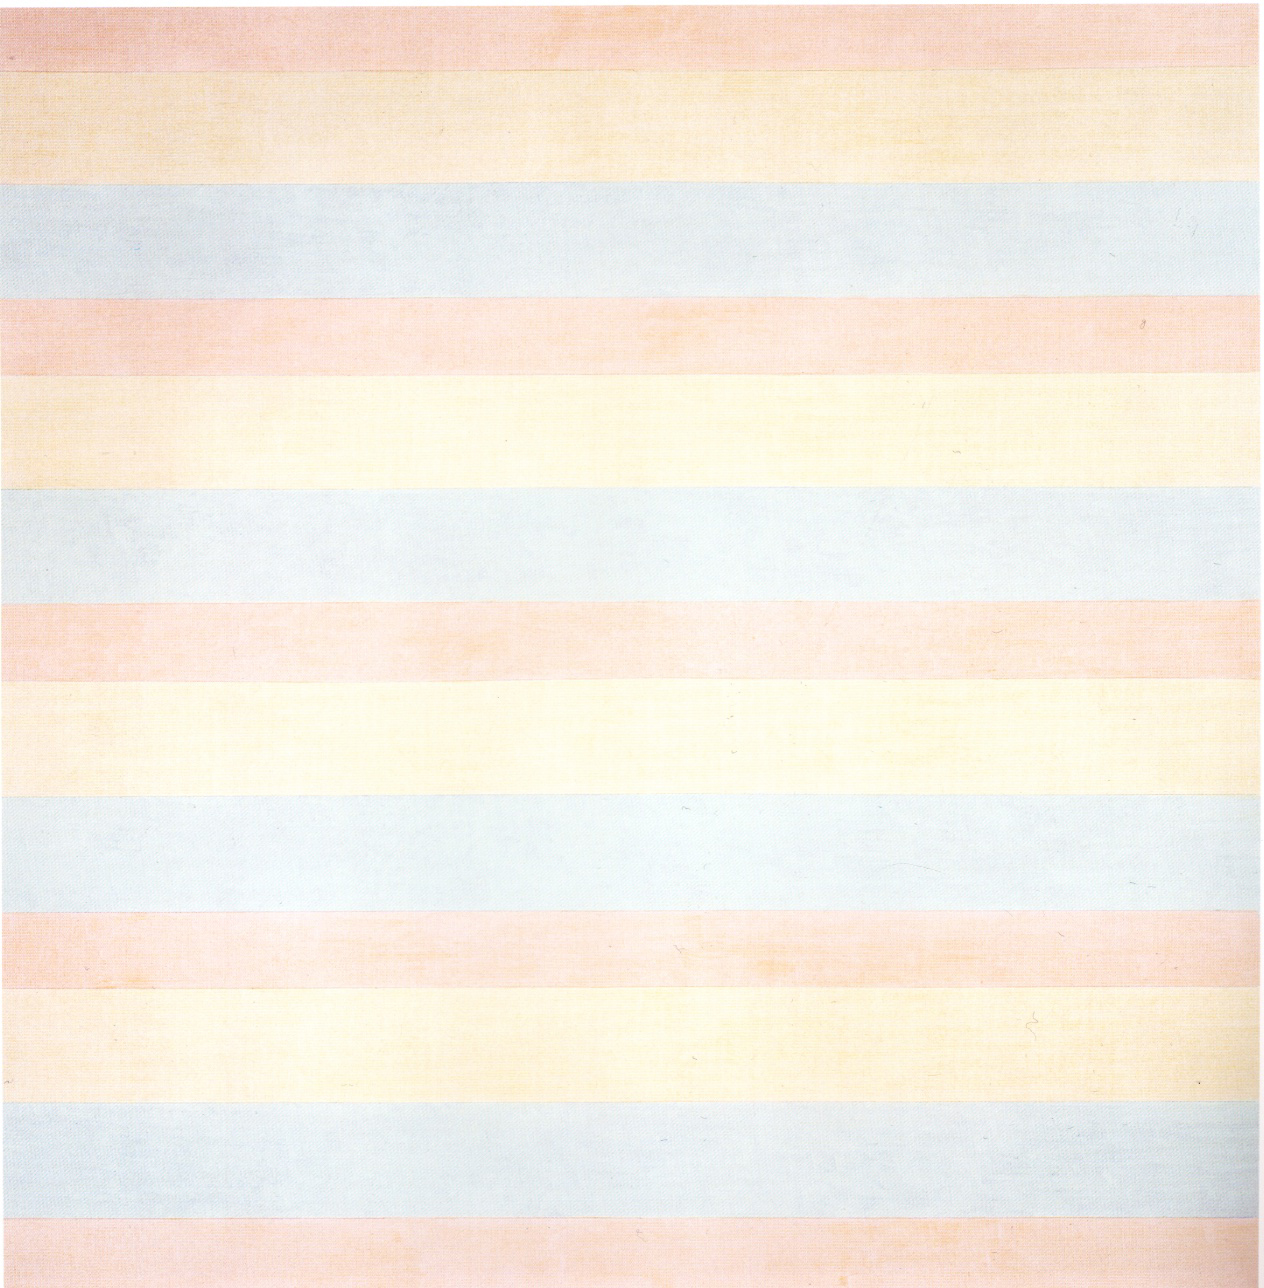 Agnes Martin Paintings Images